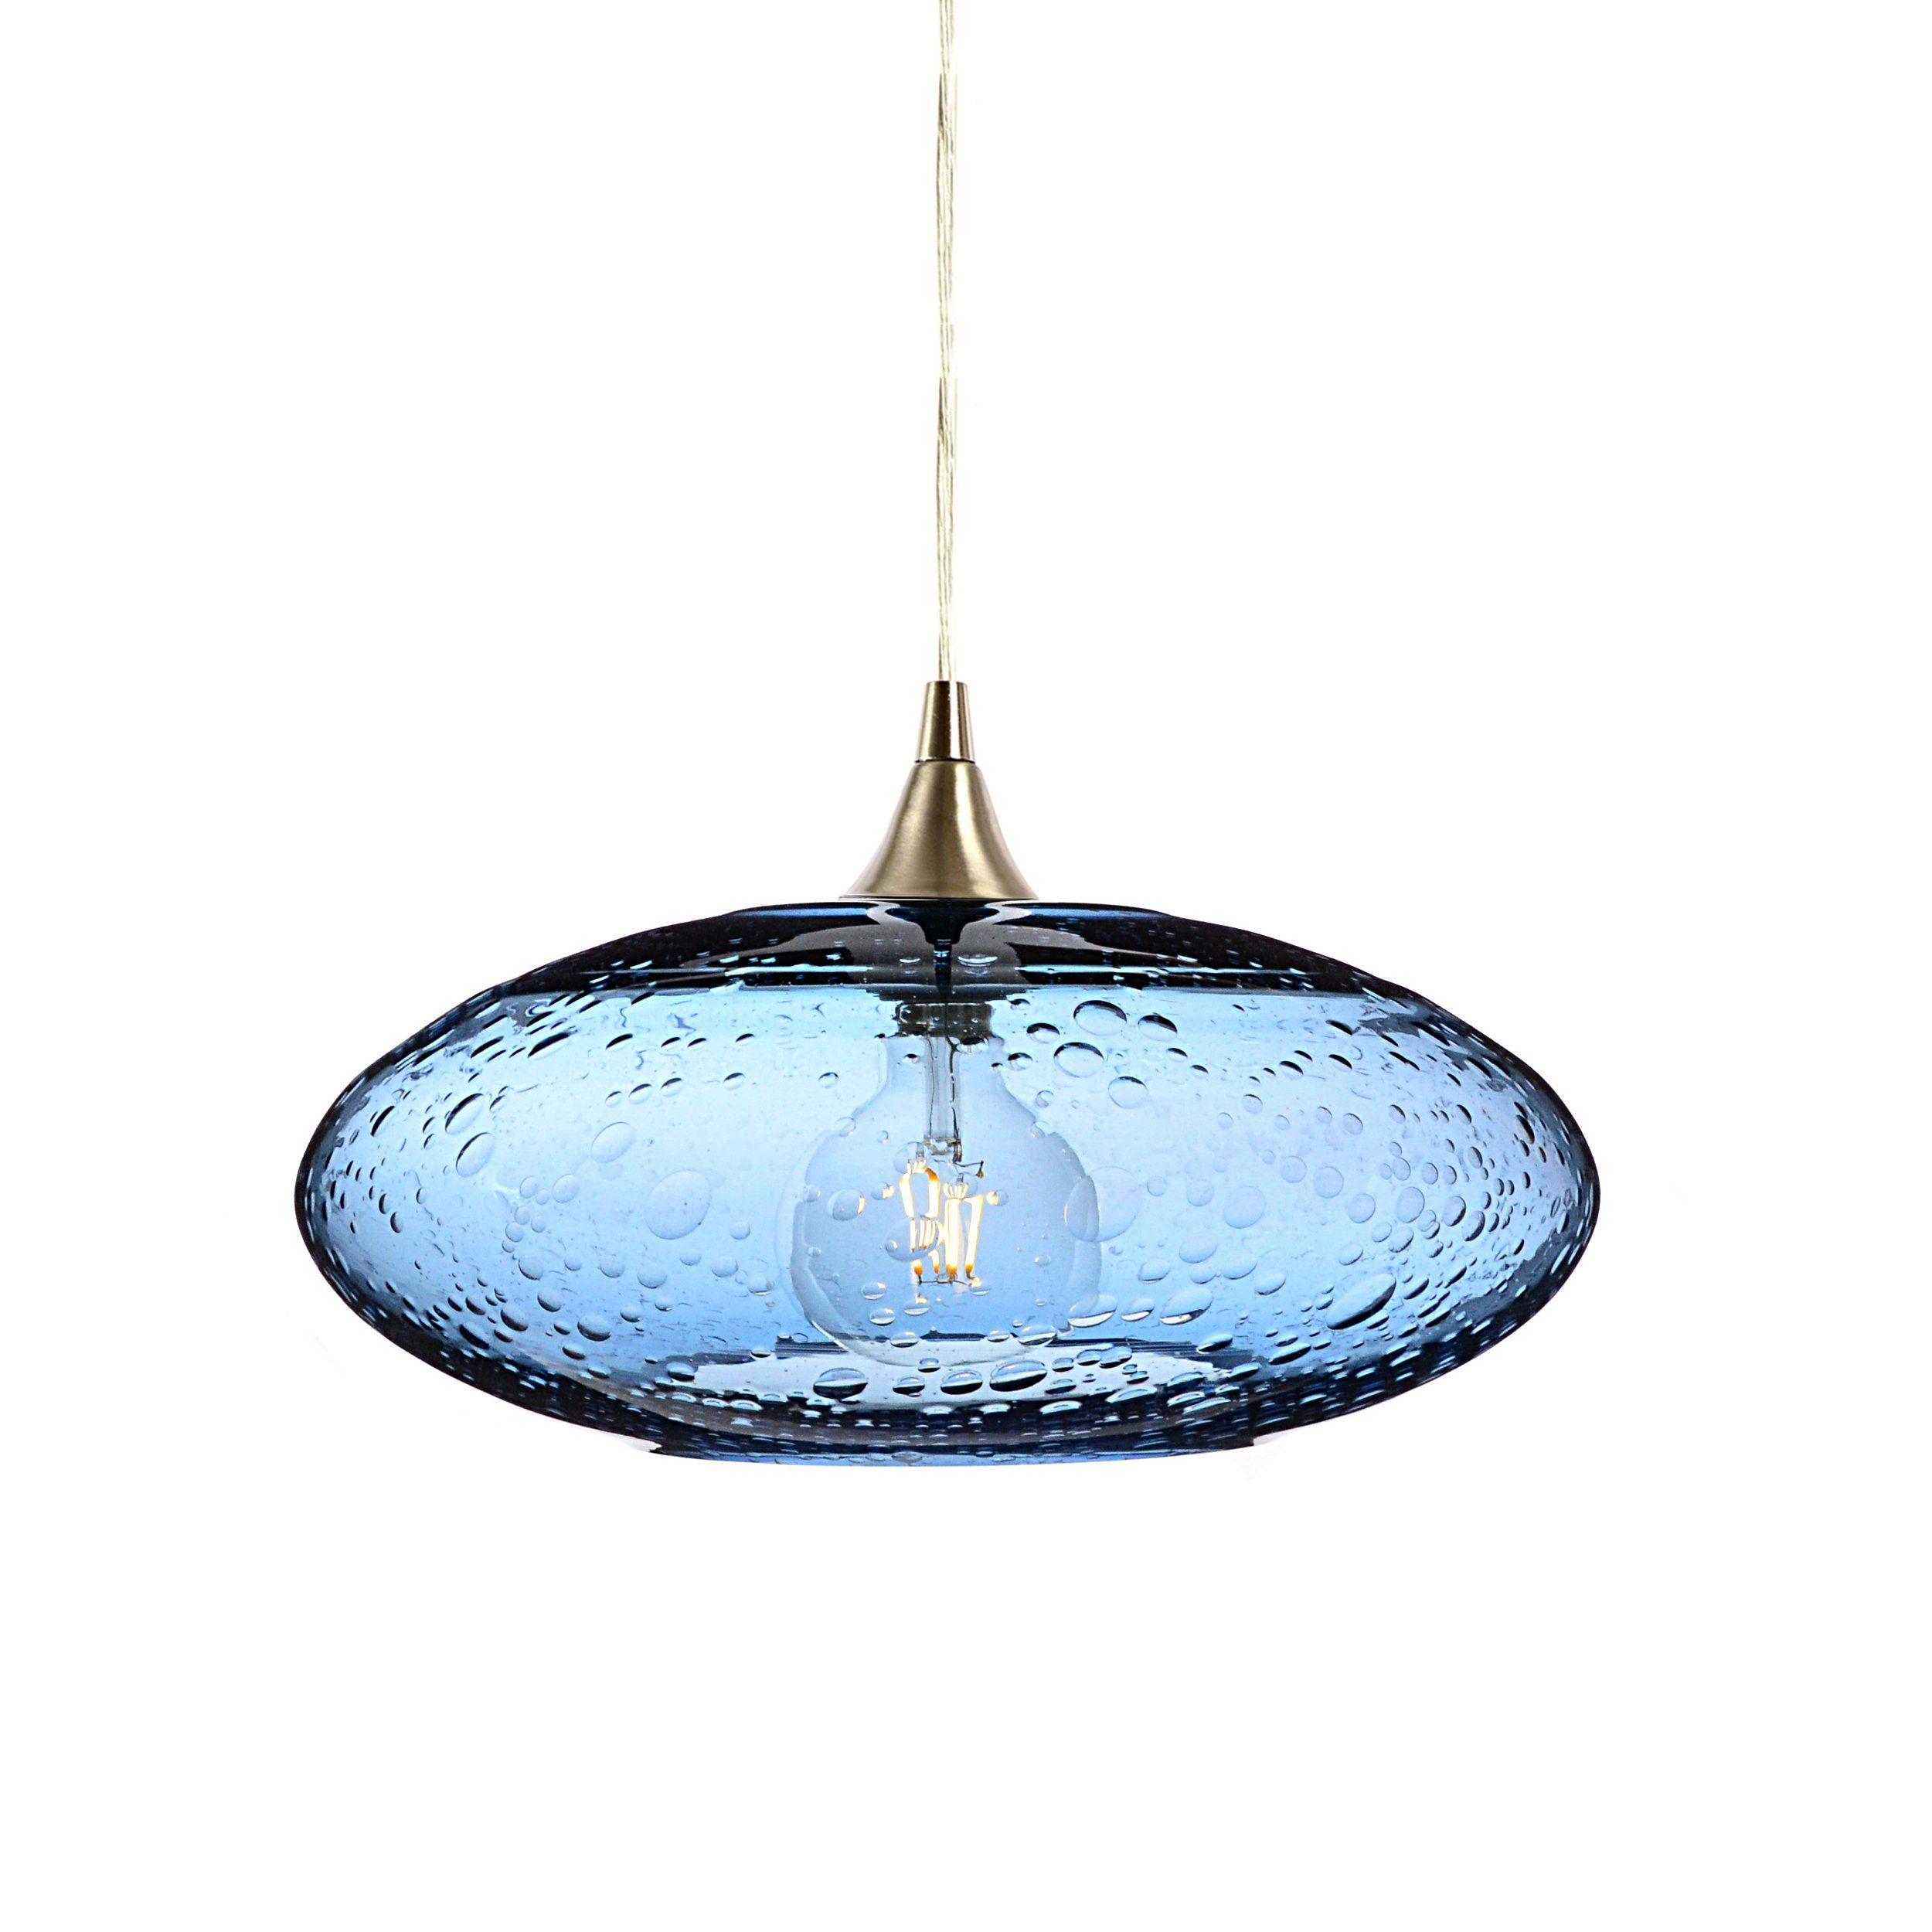 lamp pendant swell swellbrass singlewide single